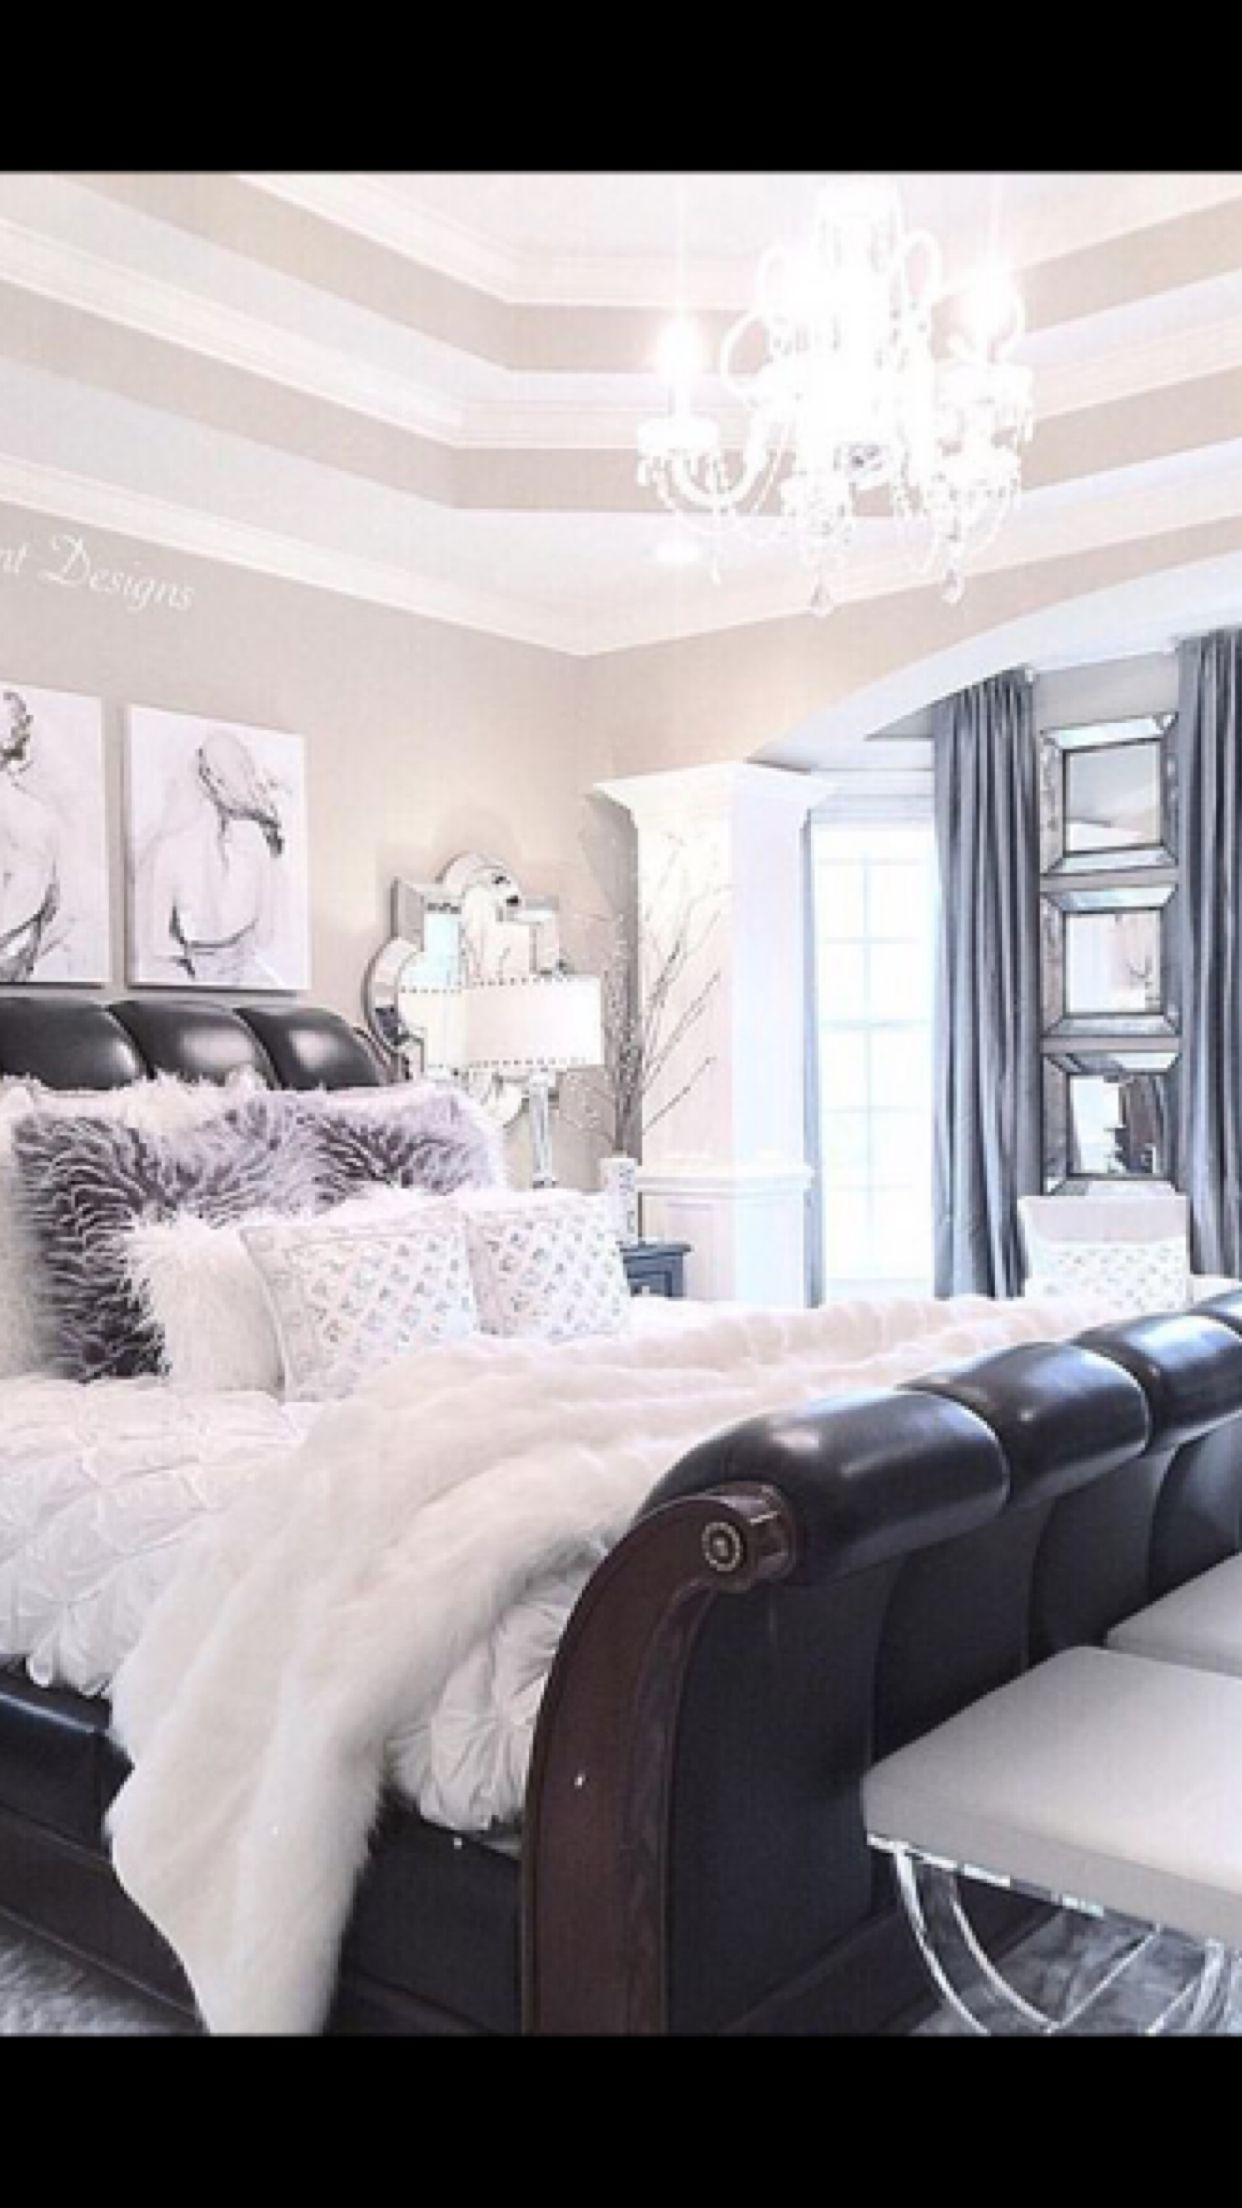 Pin by Katie Kostopoulos on Master bedroom | Master bedroom by Katie ...